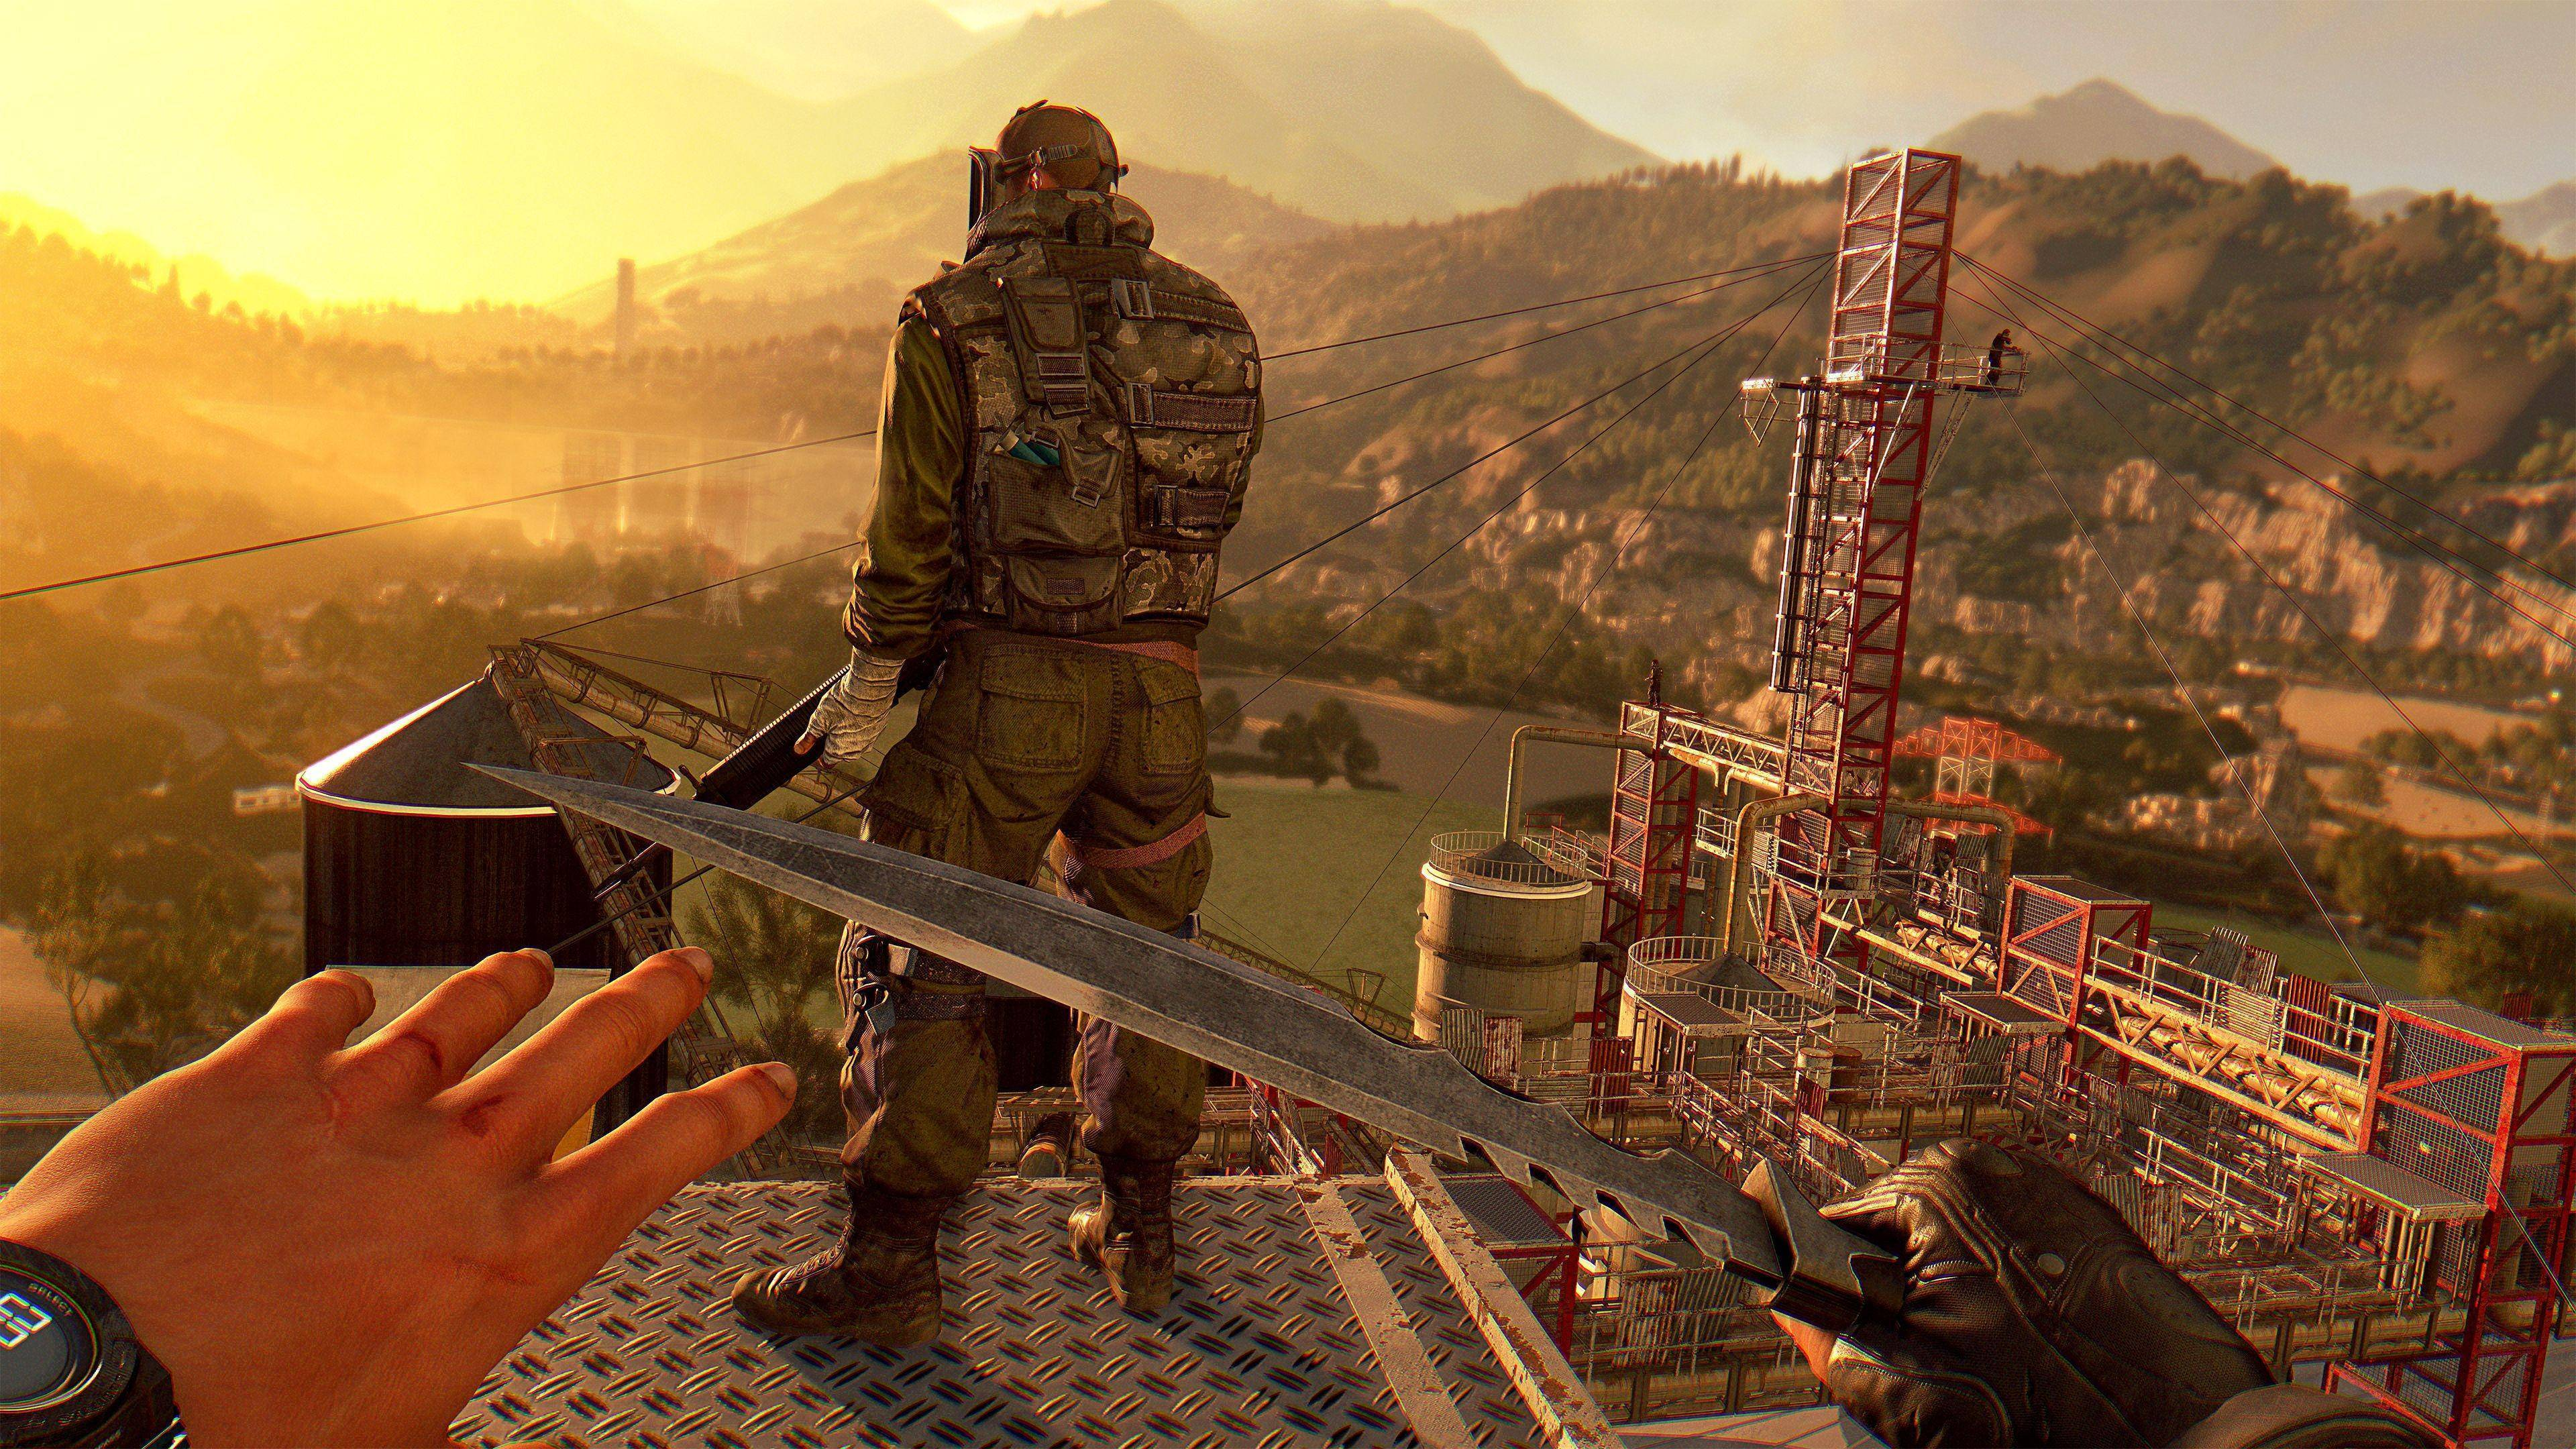 Buy Dying Light The Following Enhanced Edition pc cd key for Steam - Price from $10.43